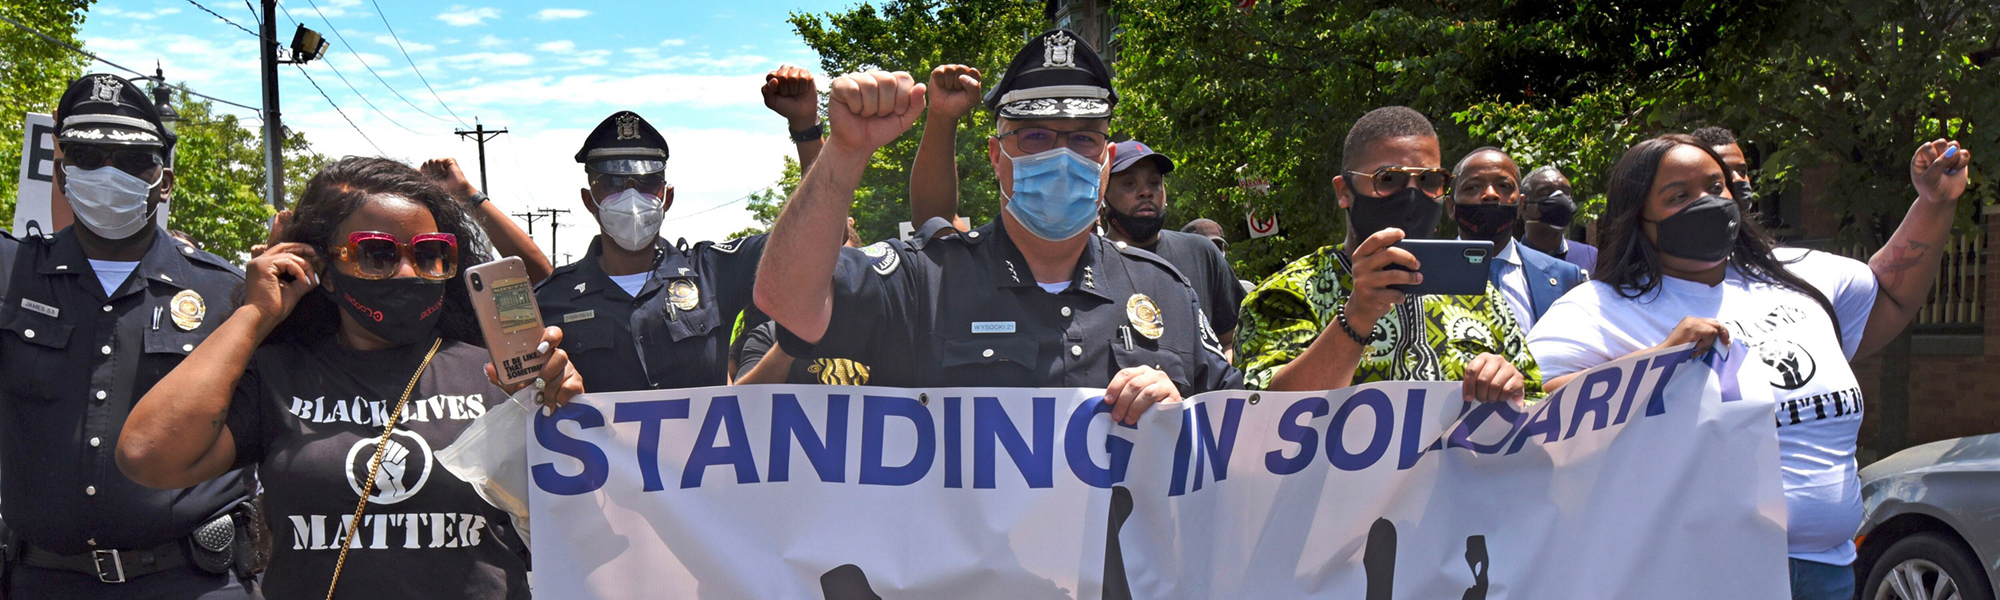 cop marching with protesters in camden